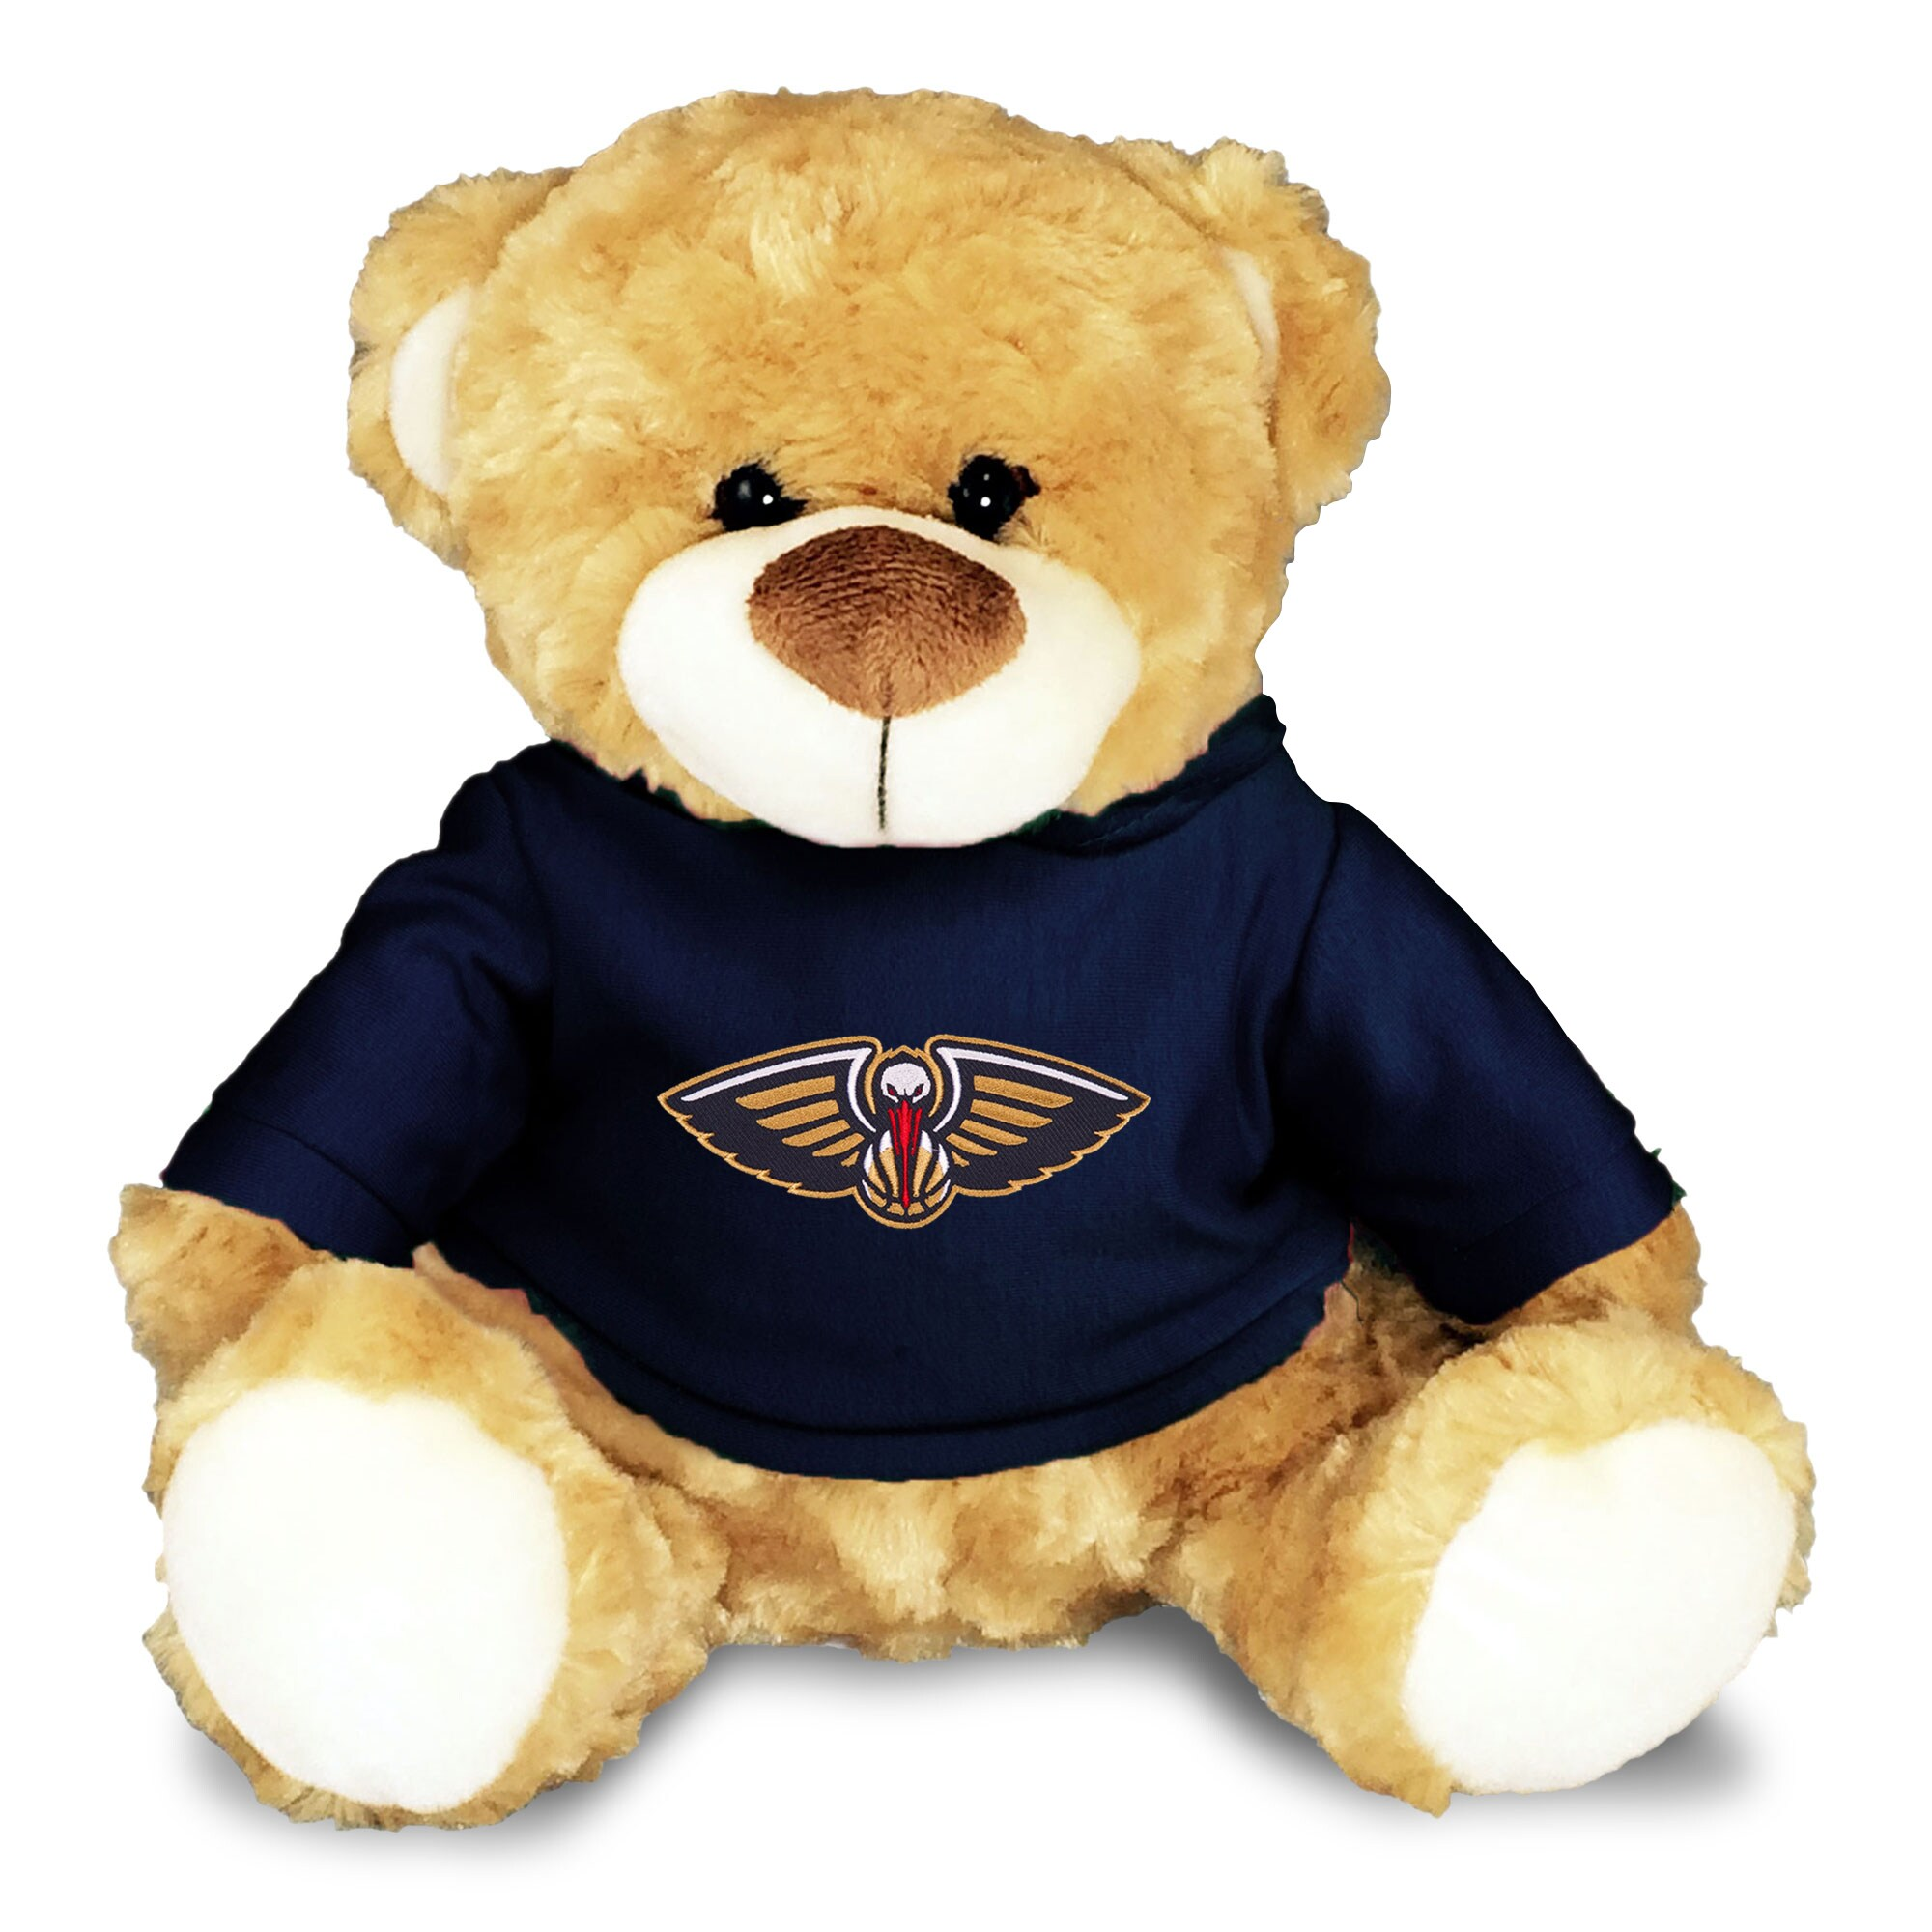 New Orleans Pelicans Personalized 10'' Plush Bear - Navy